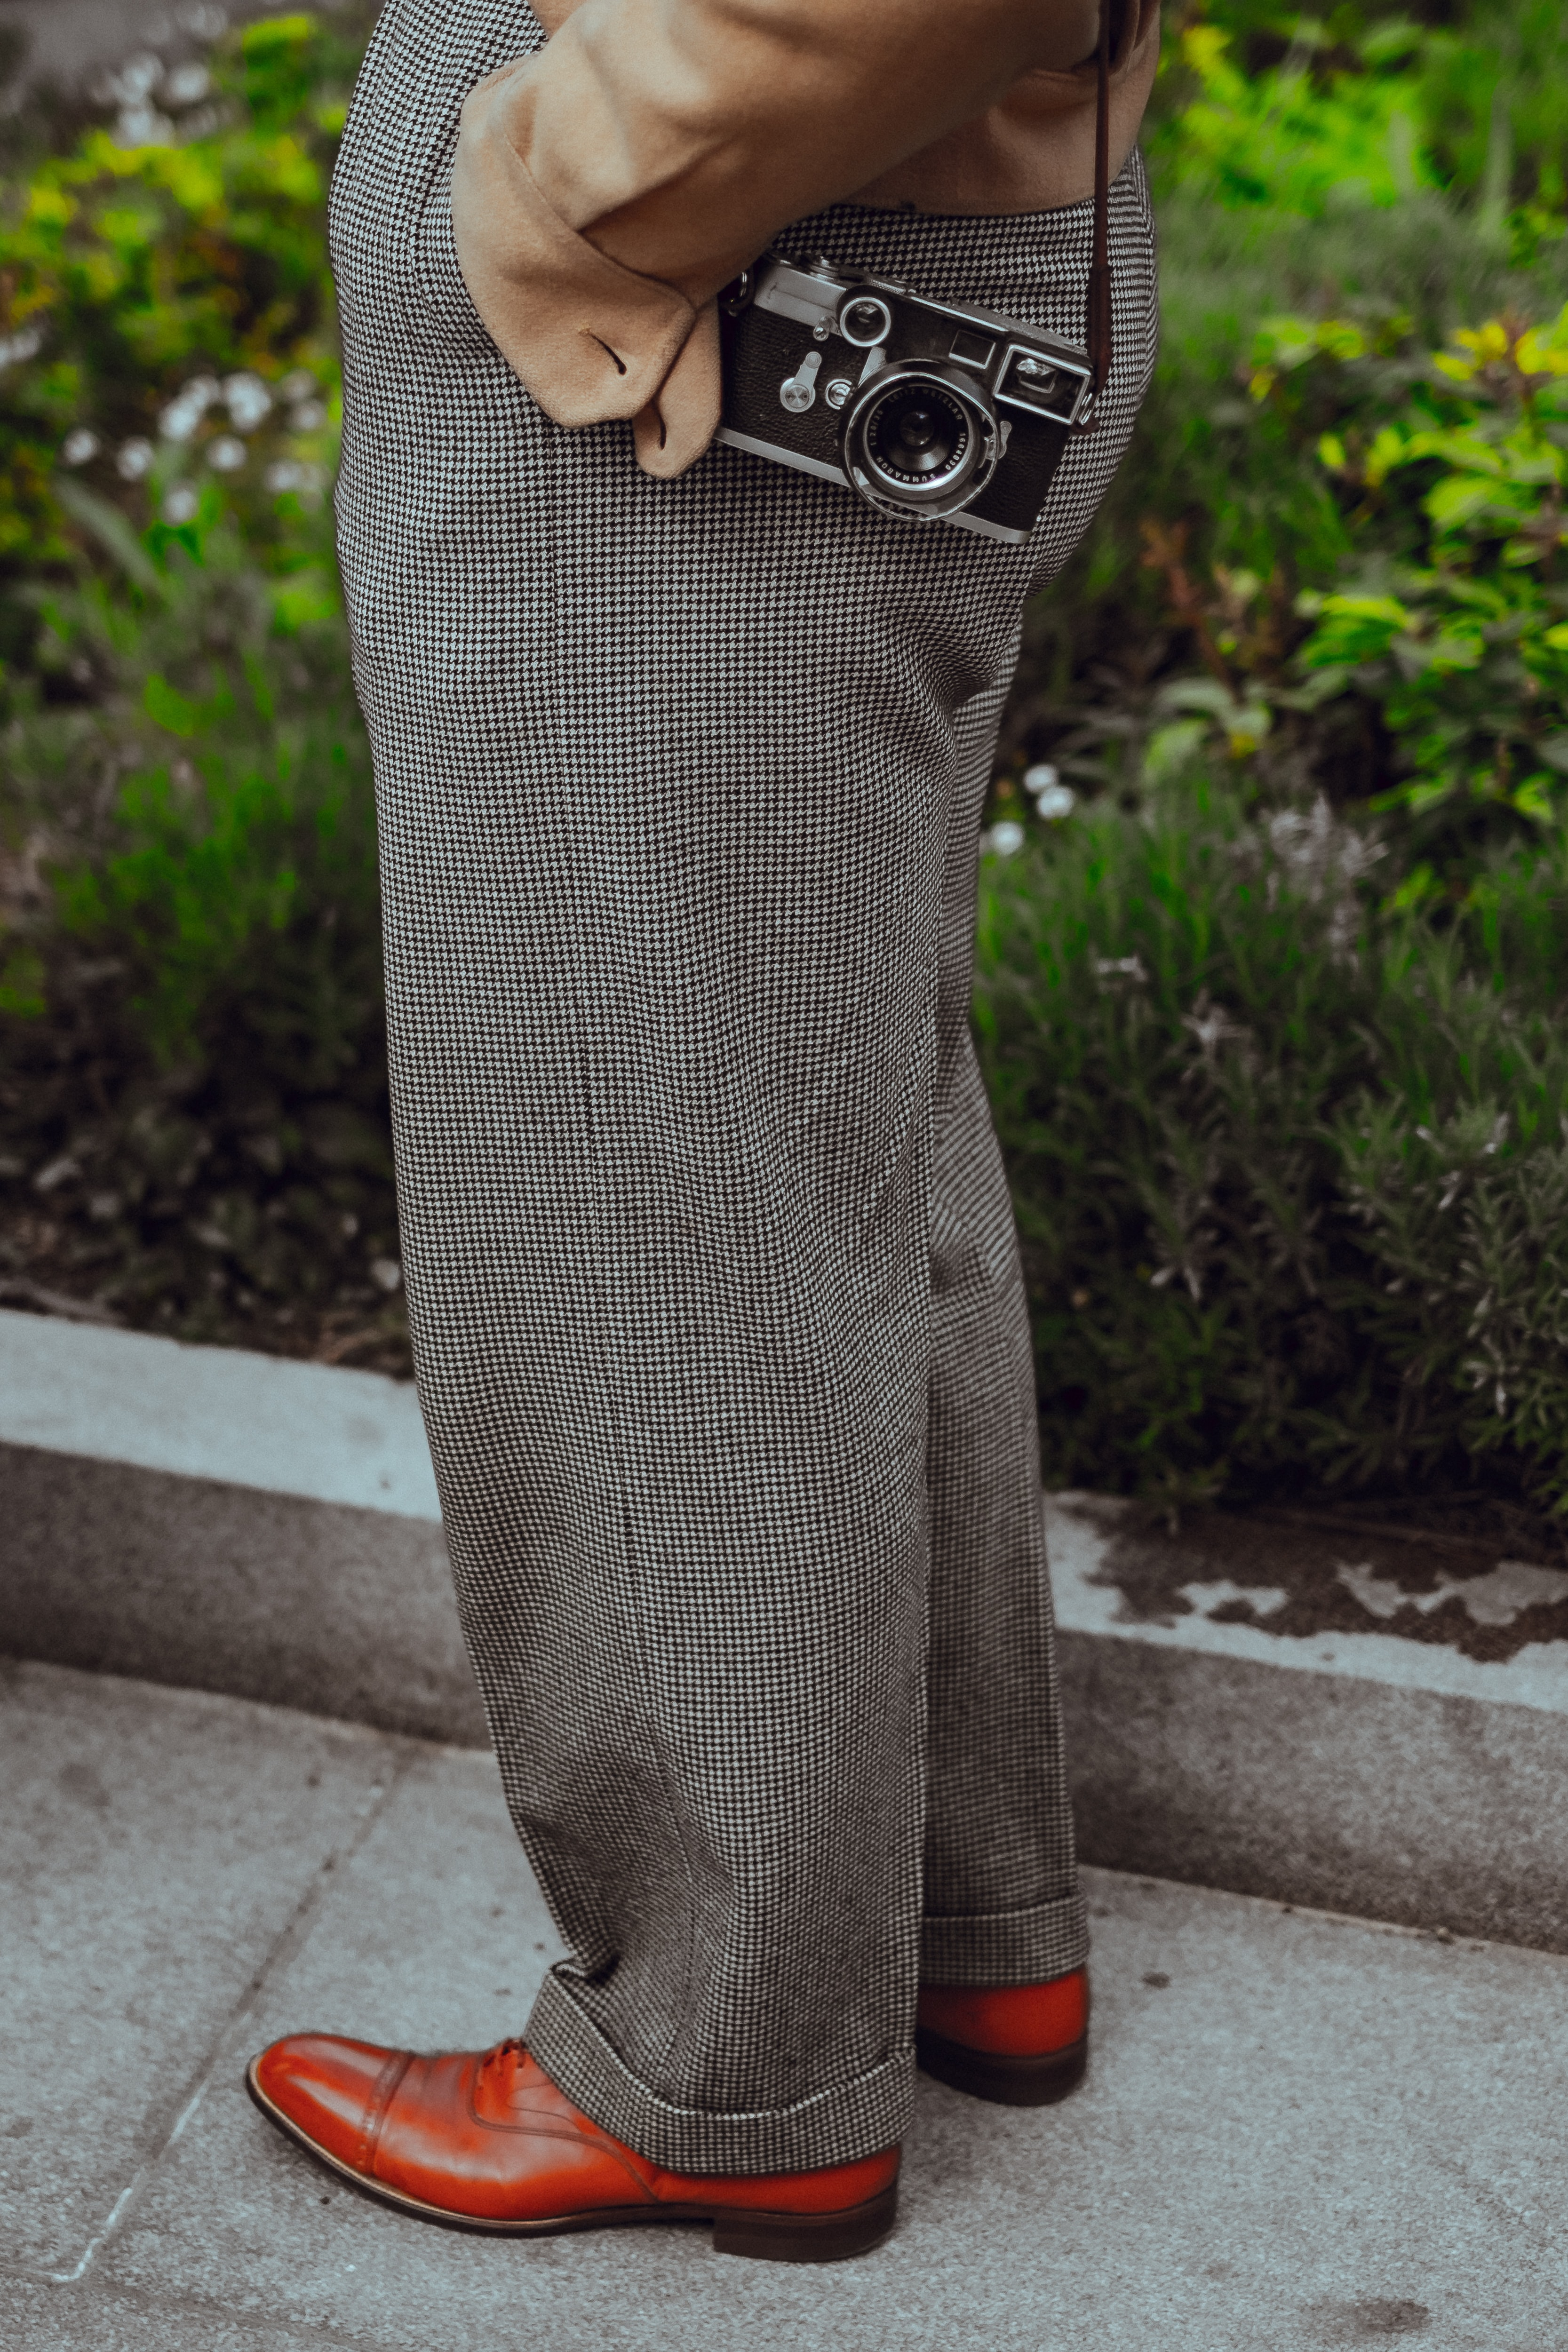 person wearing gray dress pants with camera